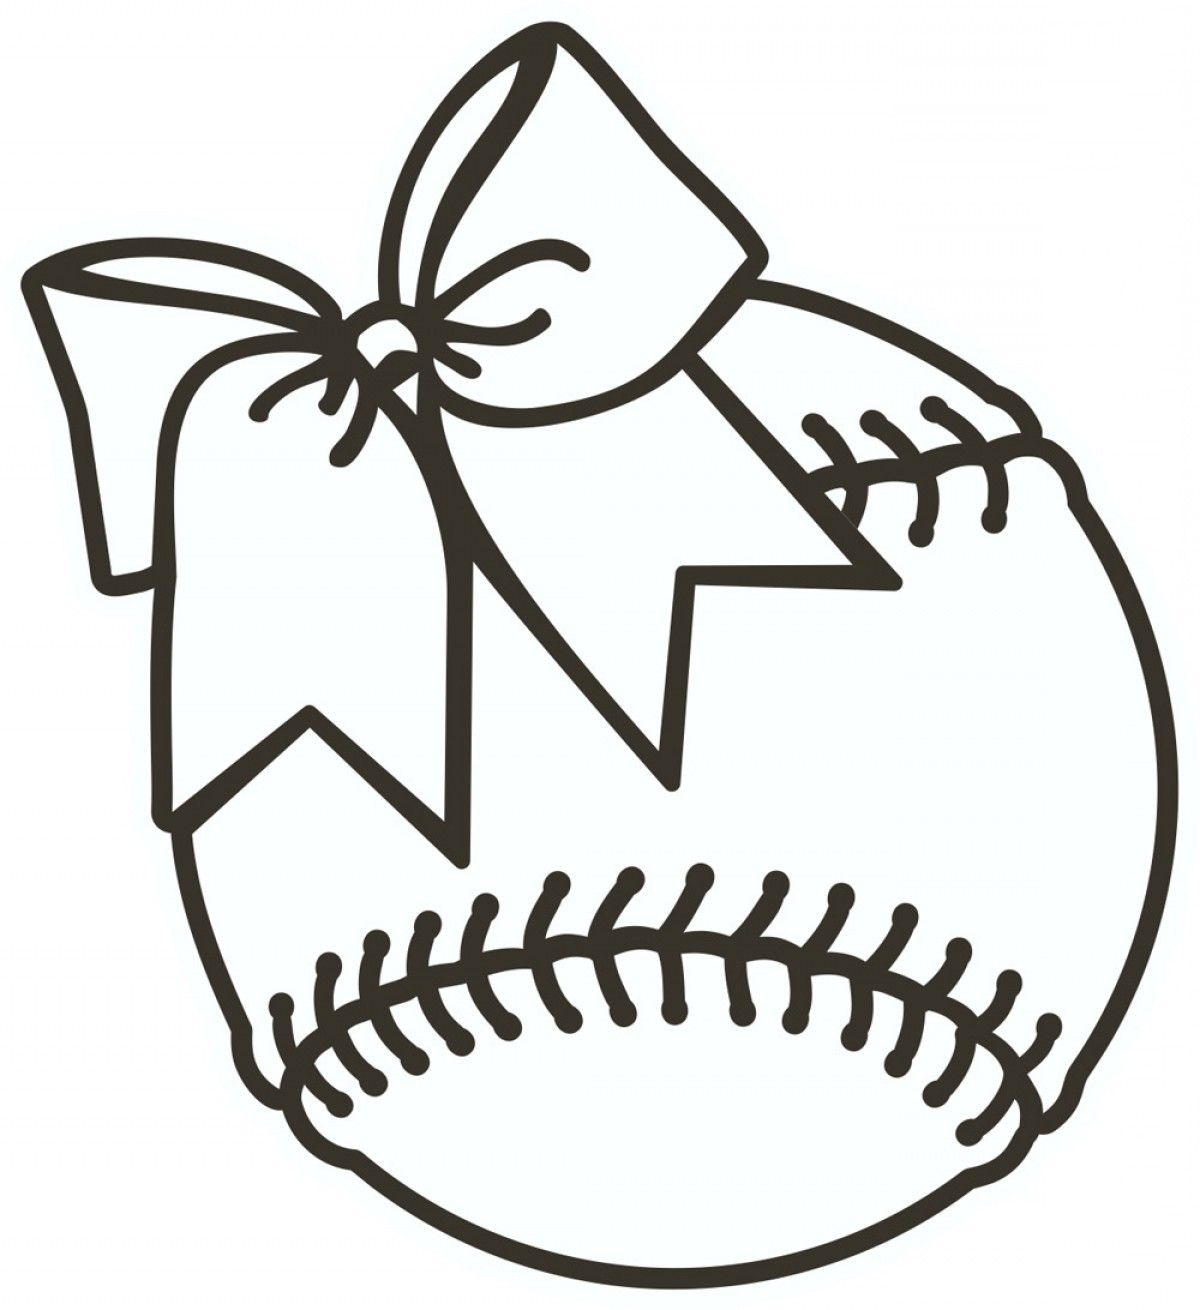 Softball Clipart Black And White Softball Clipart Sports Coloring Pages Clip Art